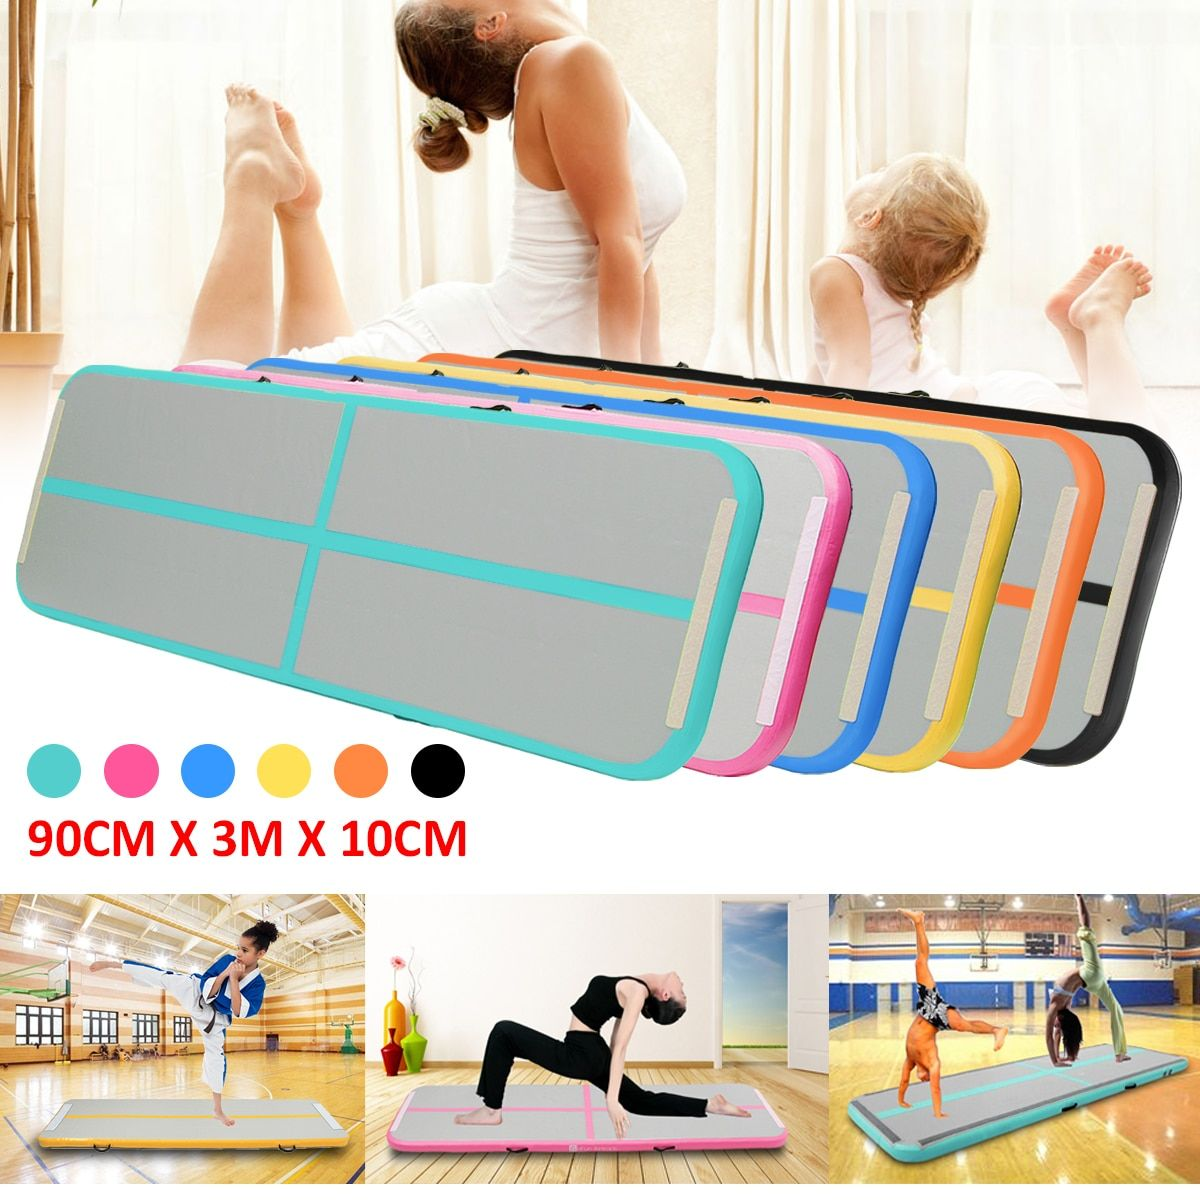 Best Deal 0.9*3m Inflatable Tumble Track Trampoline Air Track Floor Home GYM Gymnastics Inflatable Air Tumbling Mat